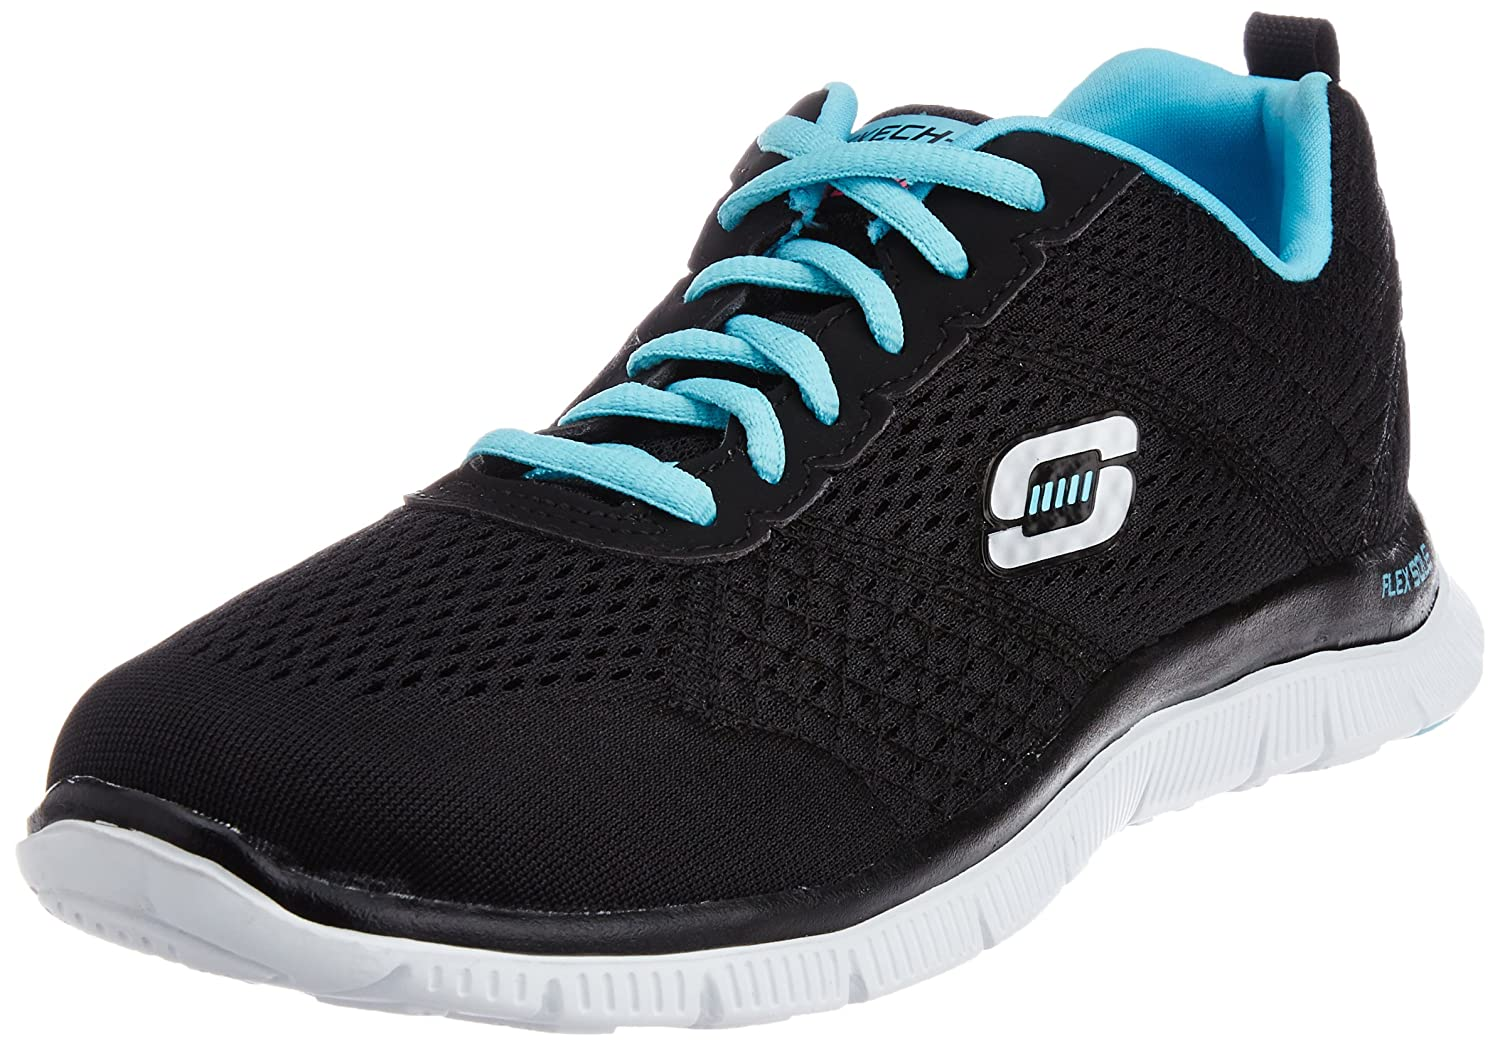 TALLA 36 EU. Skechers Flex Appeal - Obvious Choice, Zapatos para mujer